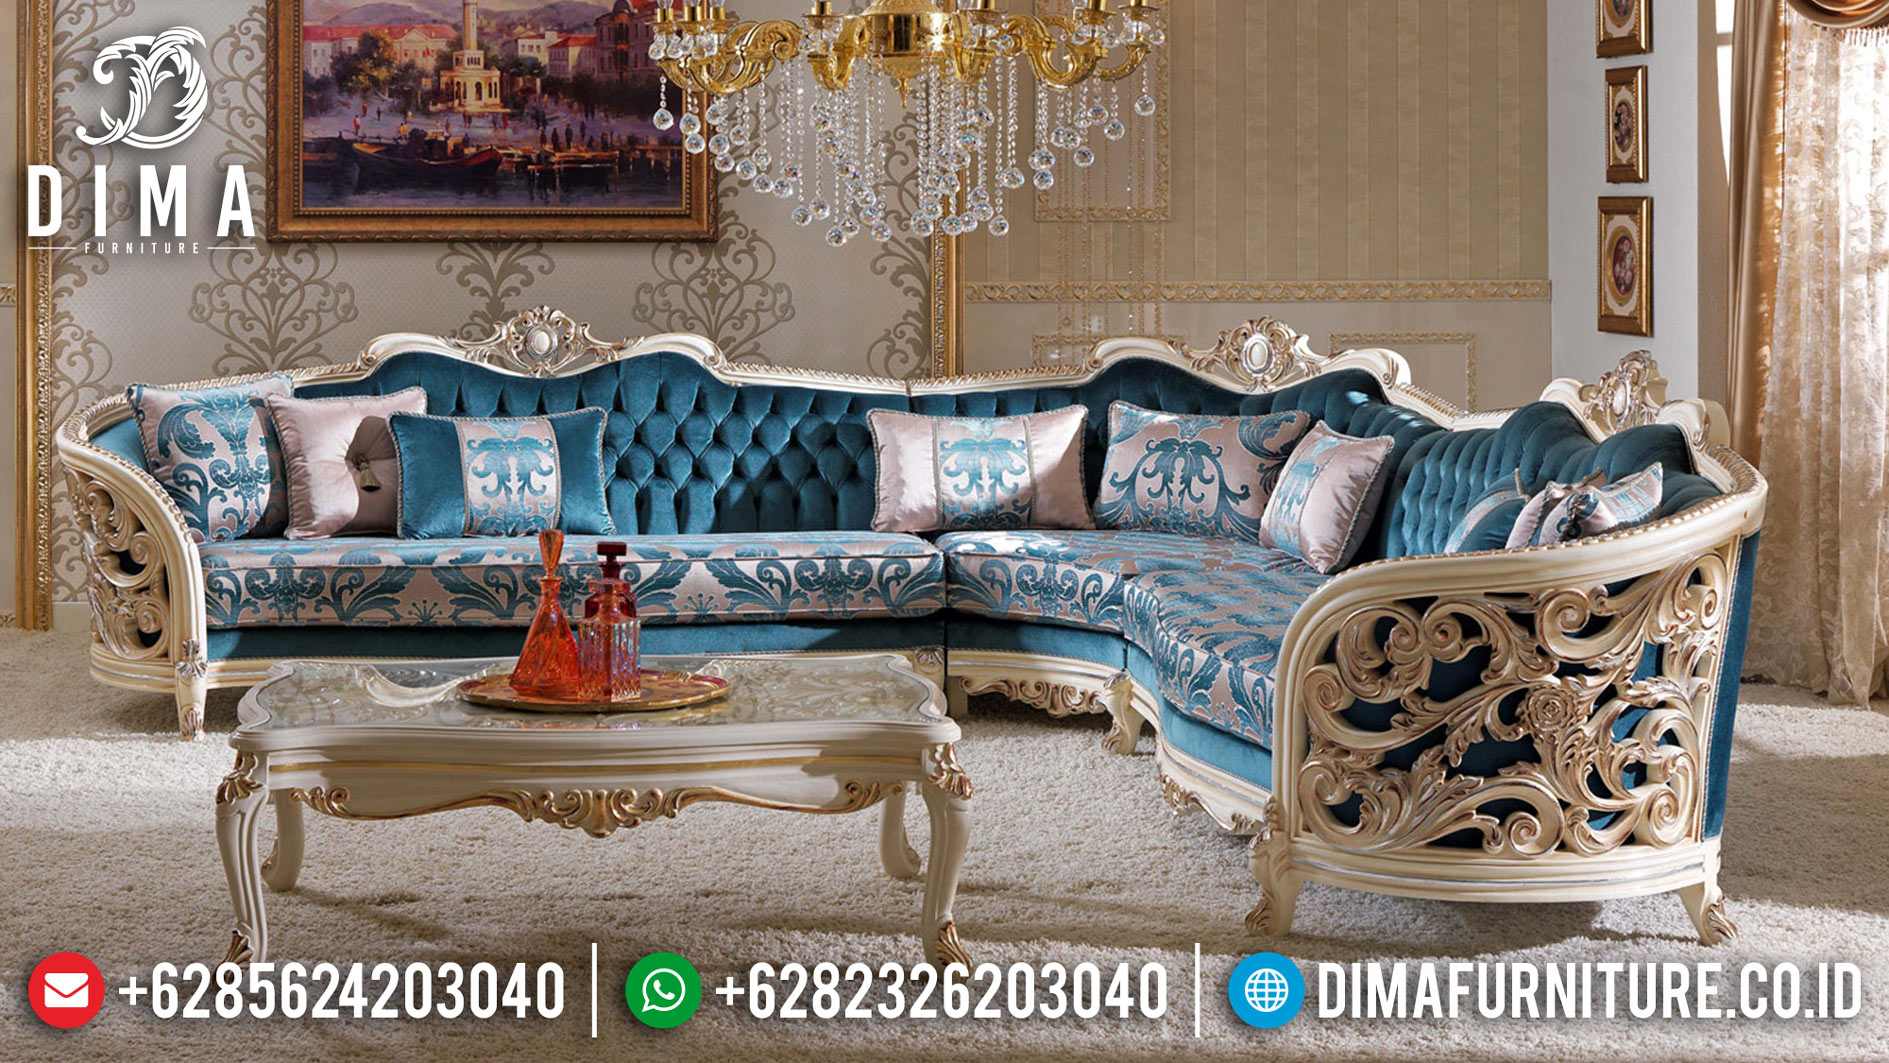 Best Price Sofa Tamu Mewah Carlotta Furniture Jepara Terbaru Mm-0691